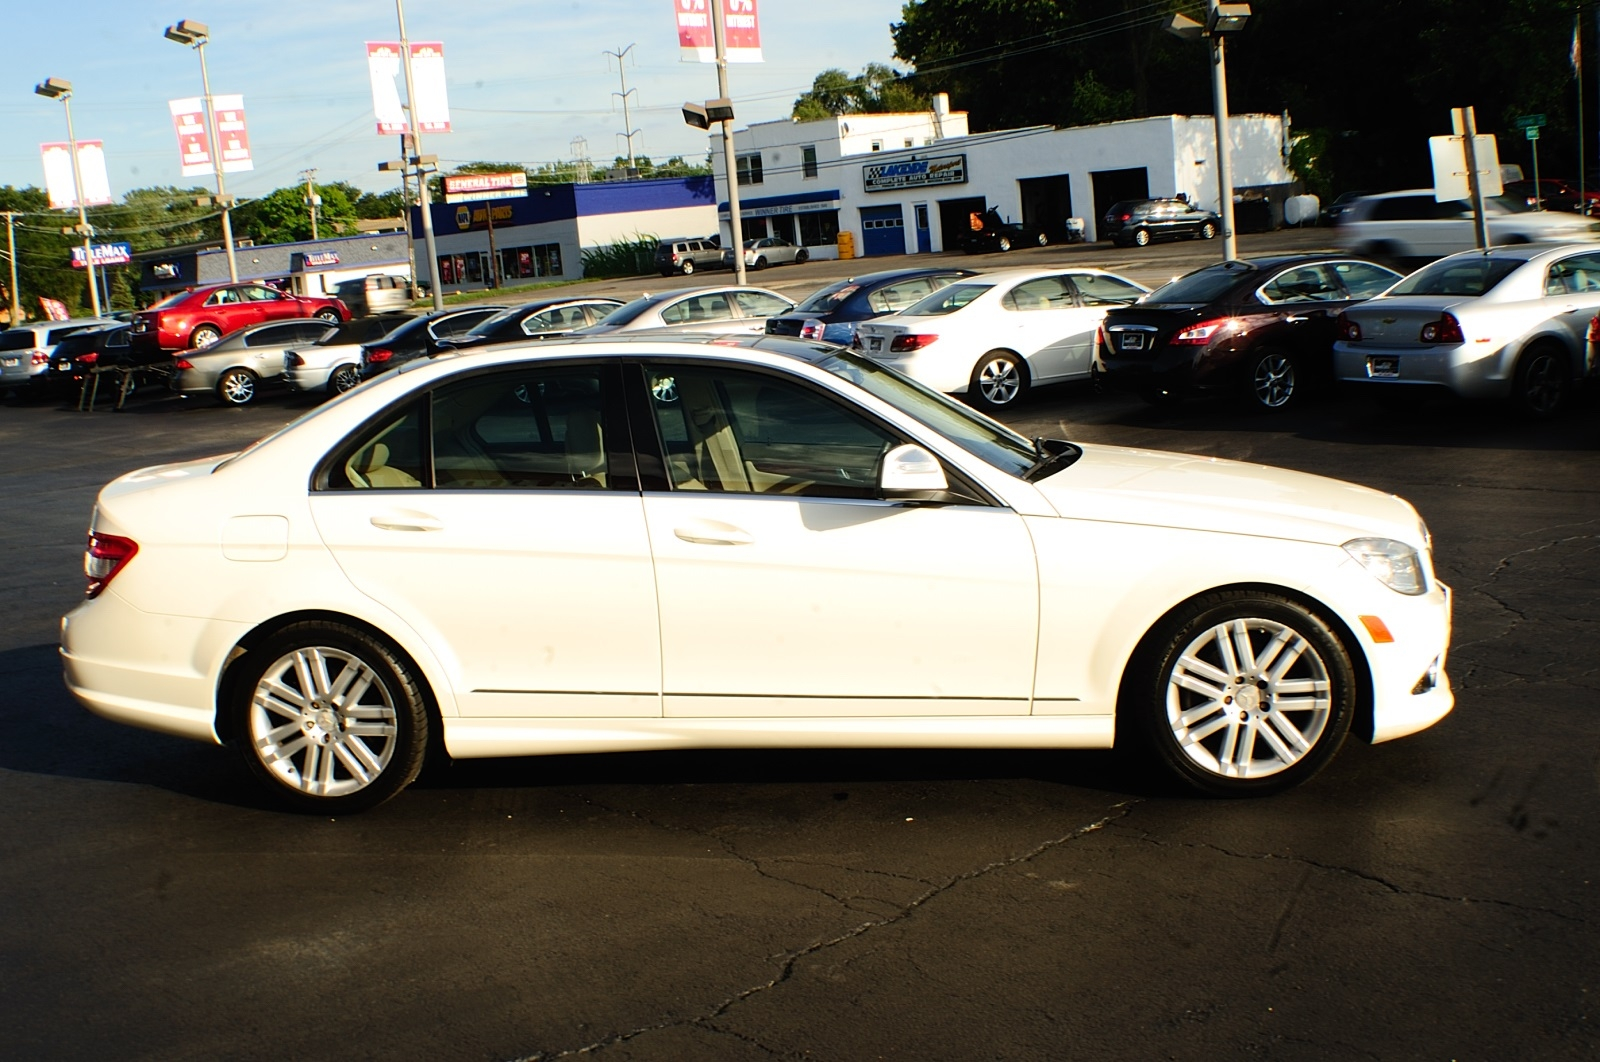 2010 Mercedes Benz C300 4Matic AWD White Sport Sedan sale Bannockburn Barrington Beach Park